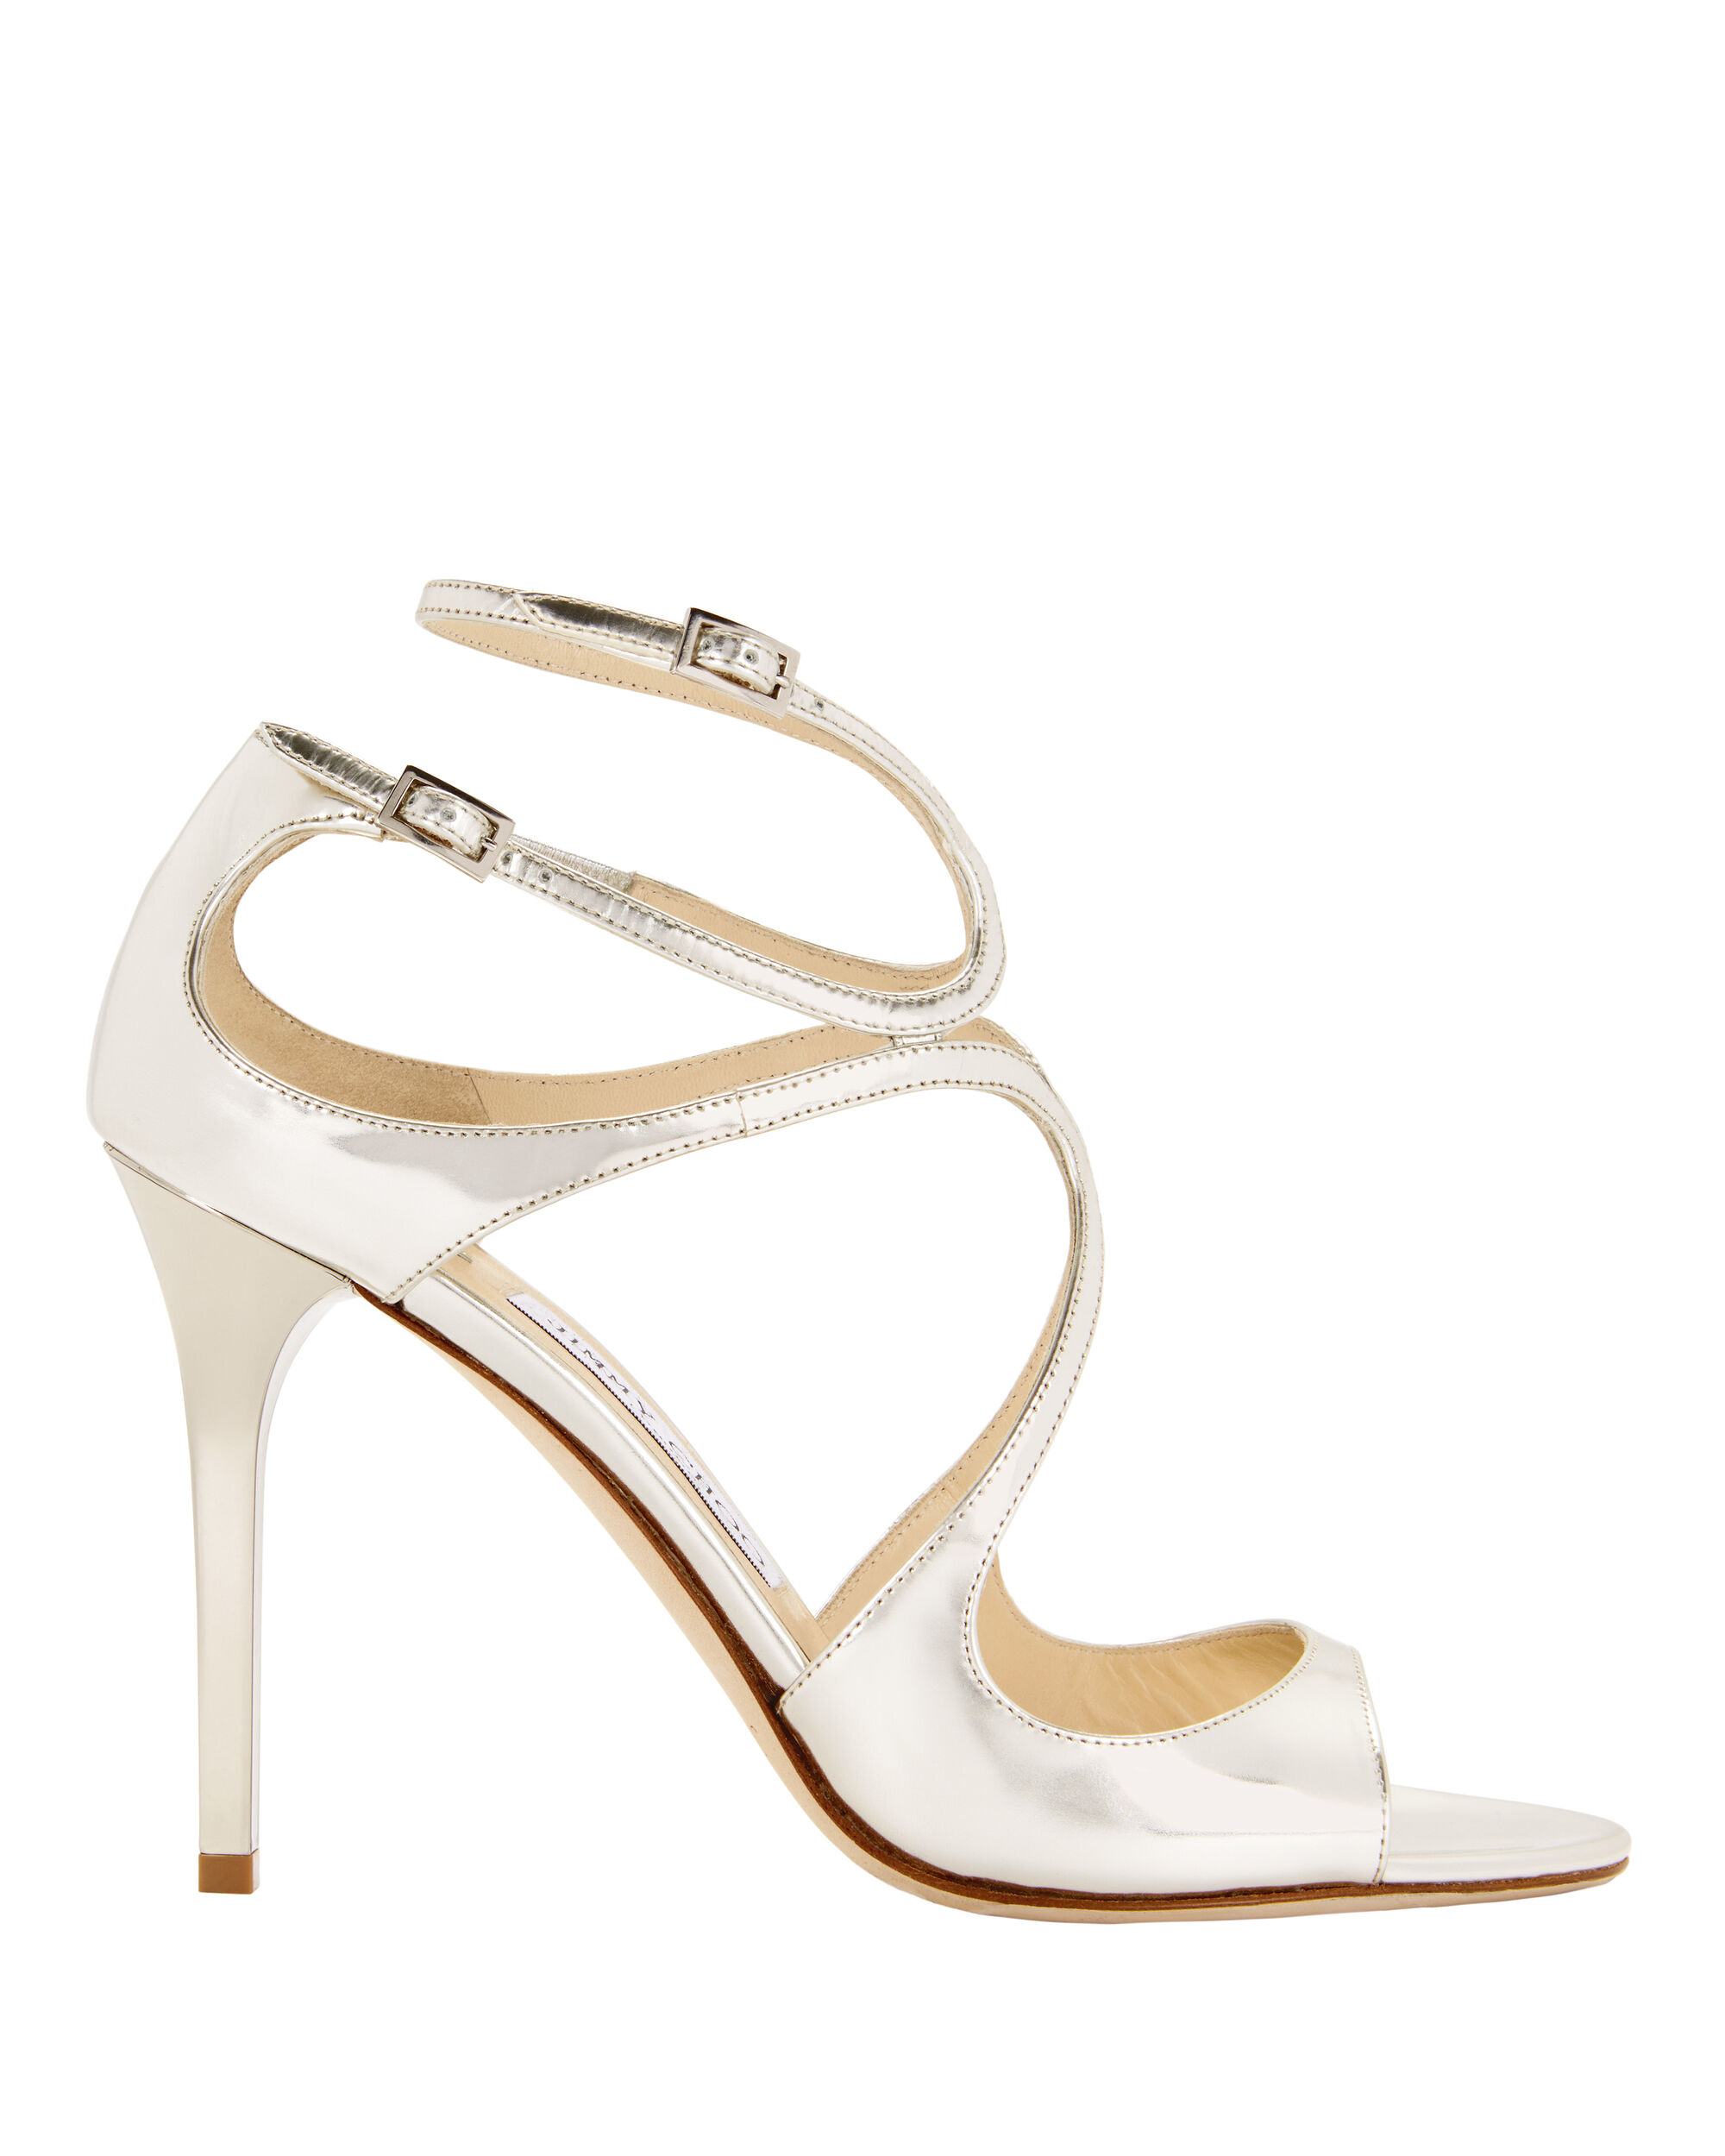 Lang Mirrored Sandals, METALLIC, hi-res